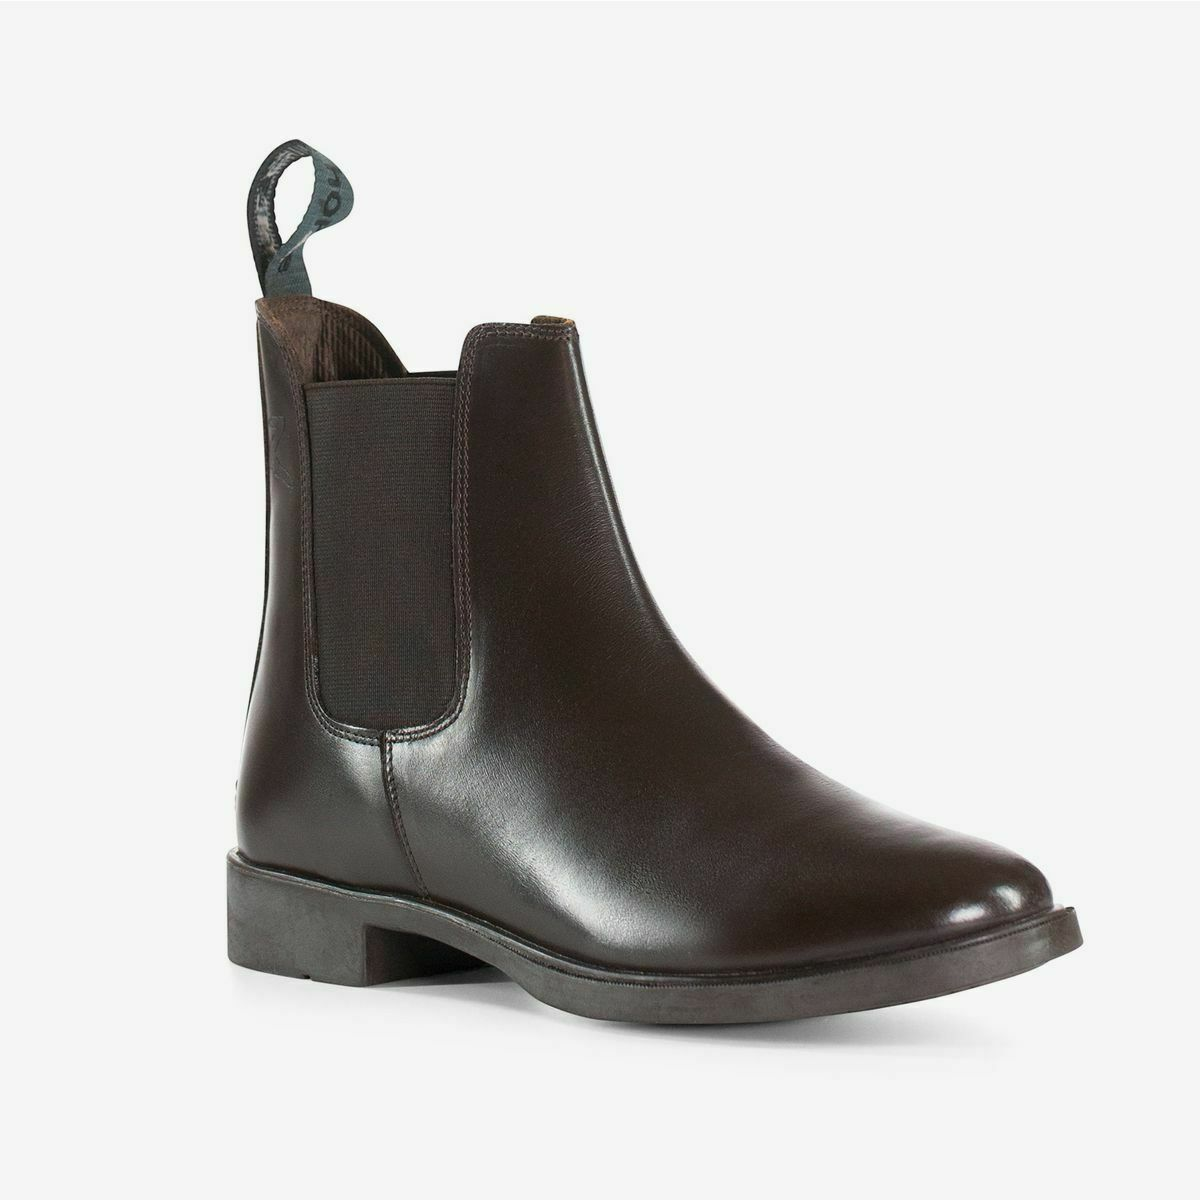 Horze Economic Pull-On Jodhpur Riding Boots with Elastic Sides Lightweight